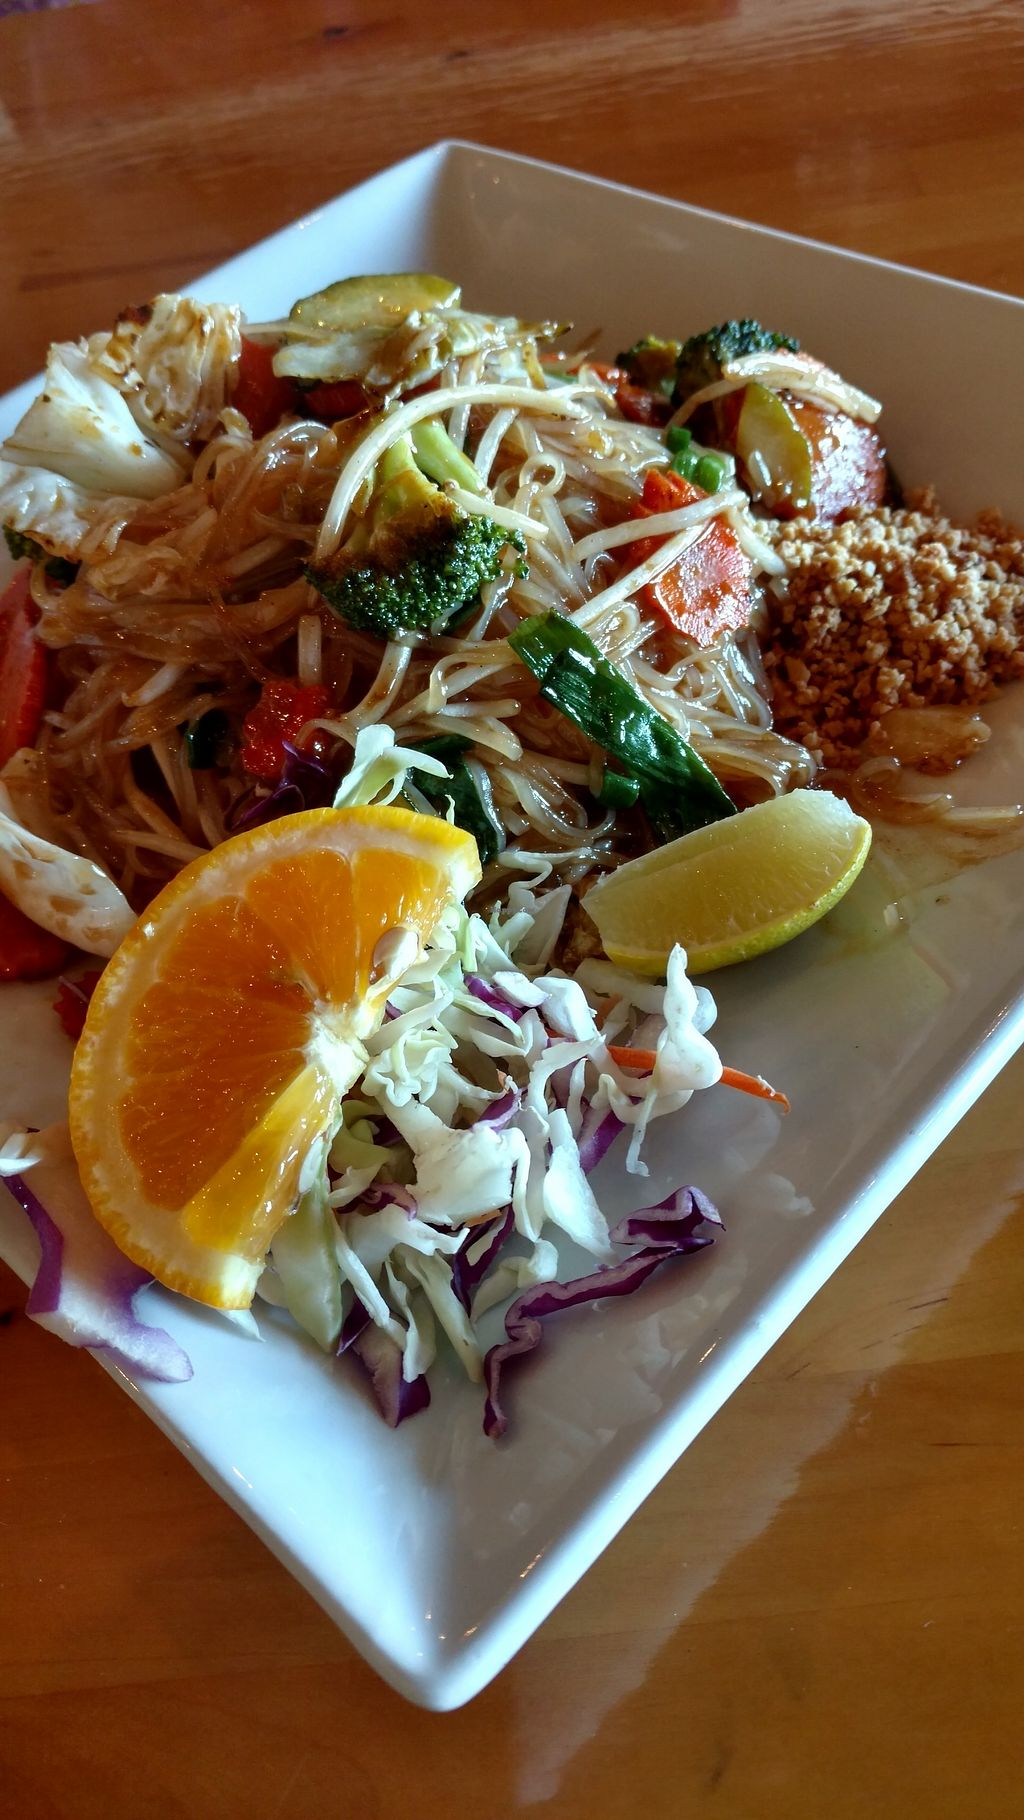 "Photo of Chon Thai Food  by <a href=""/members/profile/radtechg9"">radtechg9</a> <br/>Amazing pad thai <br/> September 30, 2017  - <a href='/contact/abuse/image/99048/310237'>Report</a>"